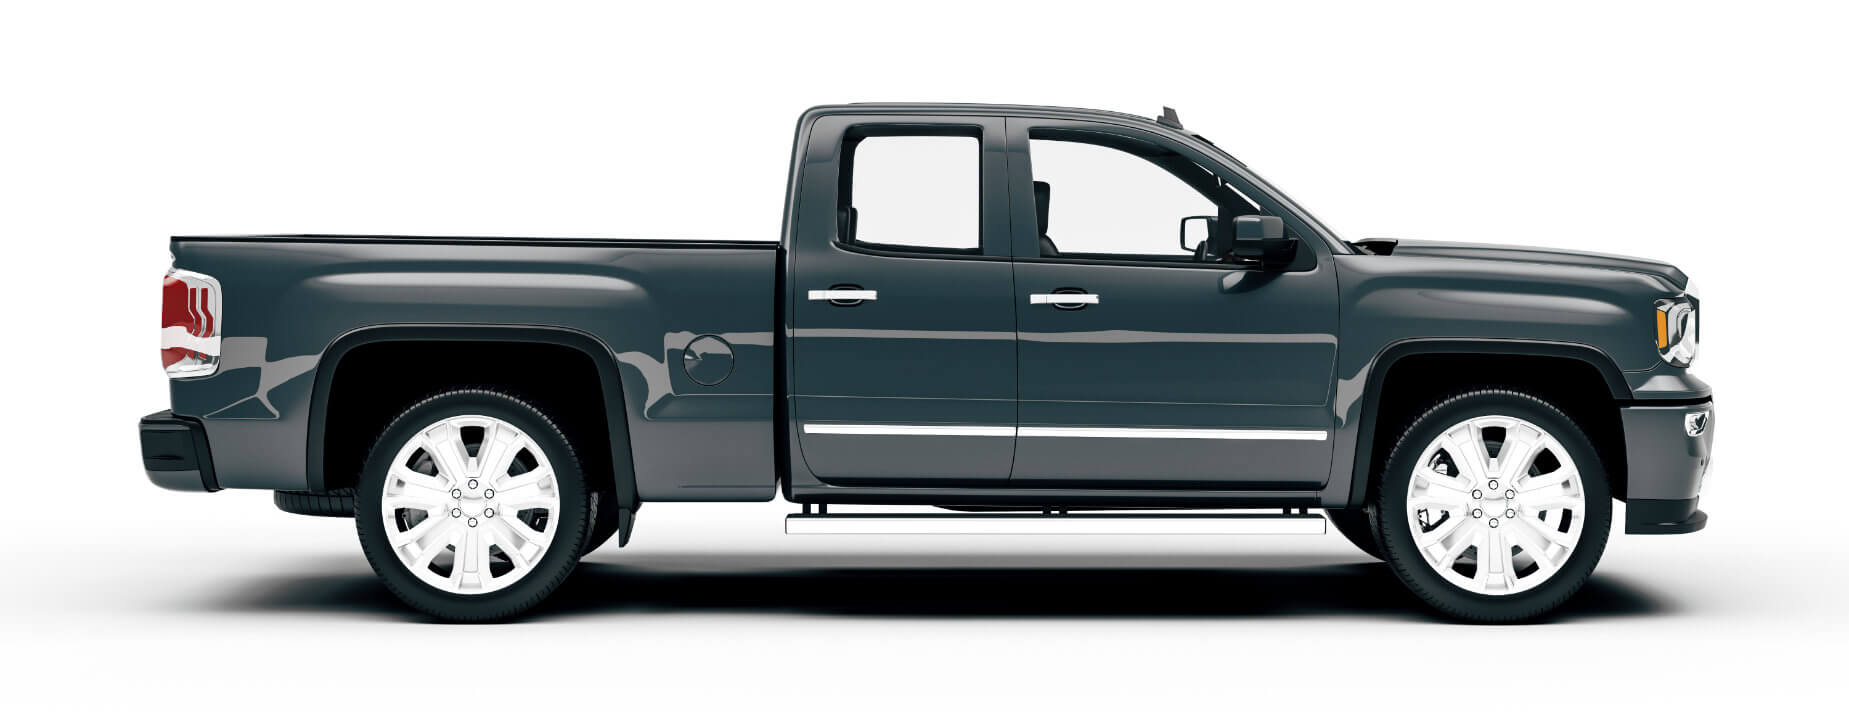 Side view of a new grey truck